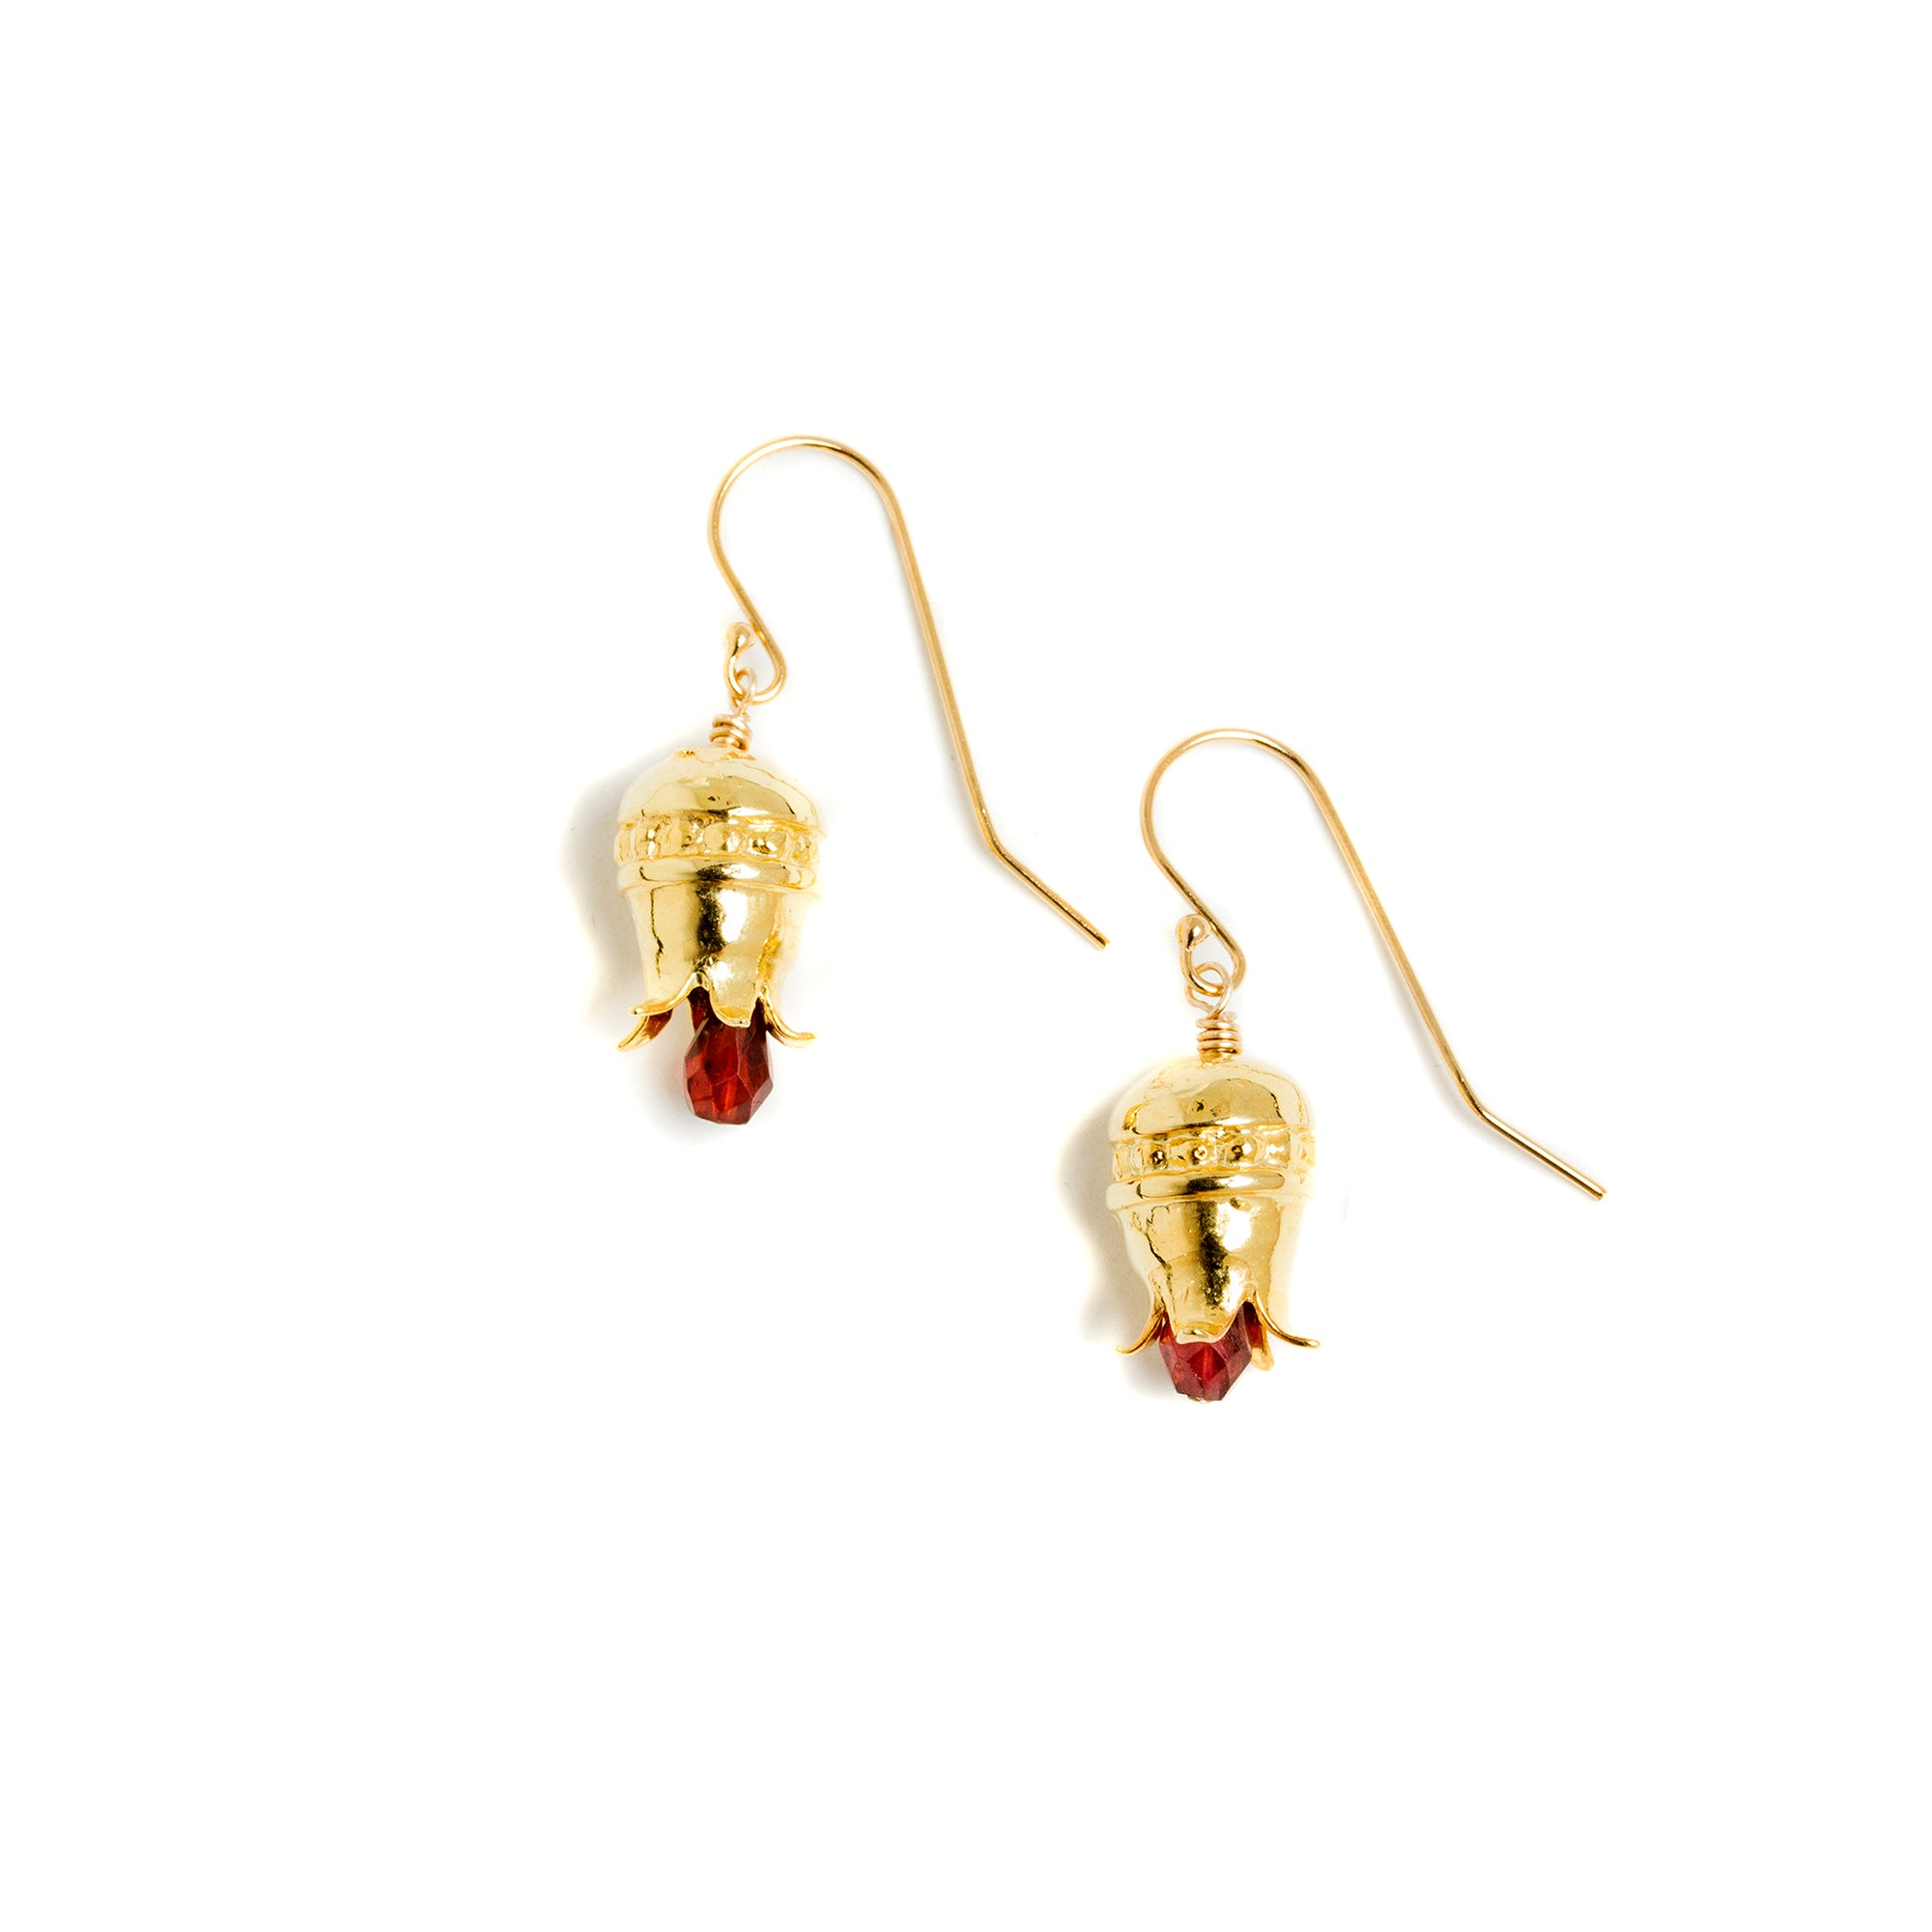 042b2db0518a2e Pomegranate Earrings with Drop Garnets - Gold-Plated - The Getty Store